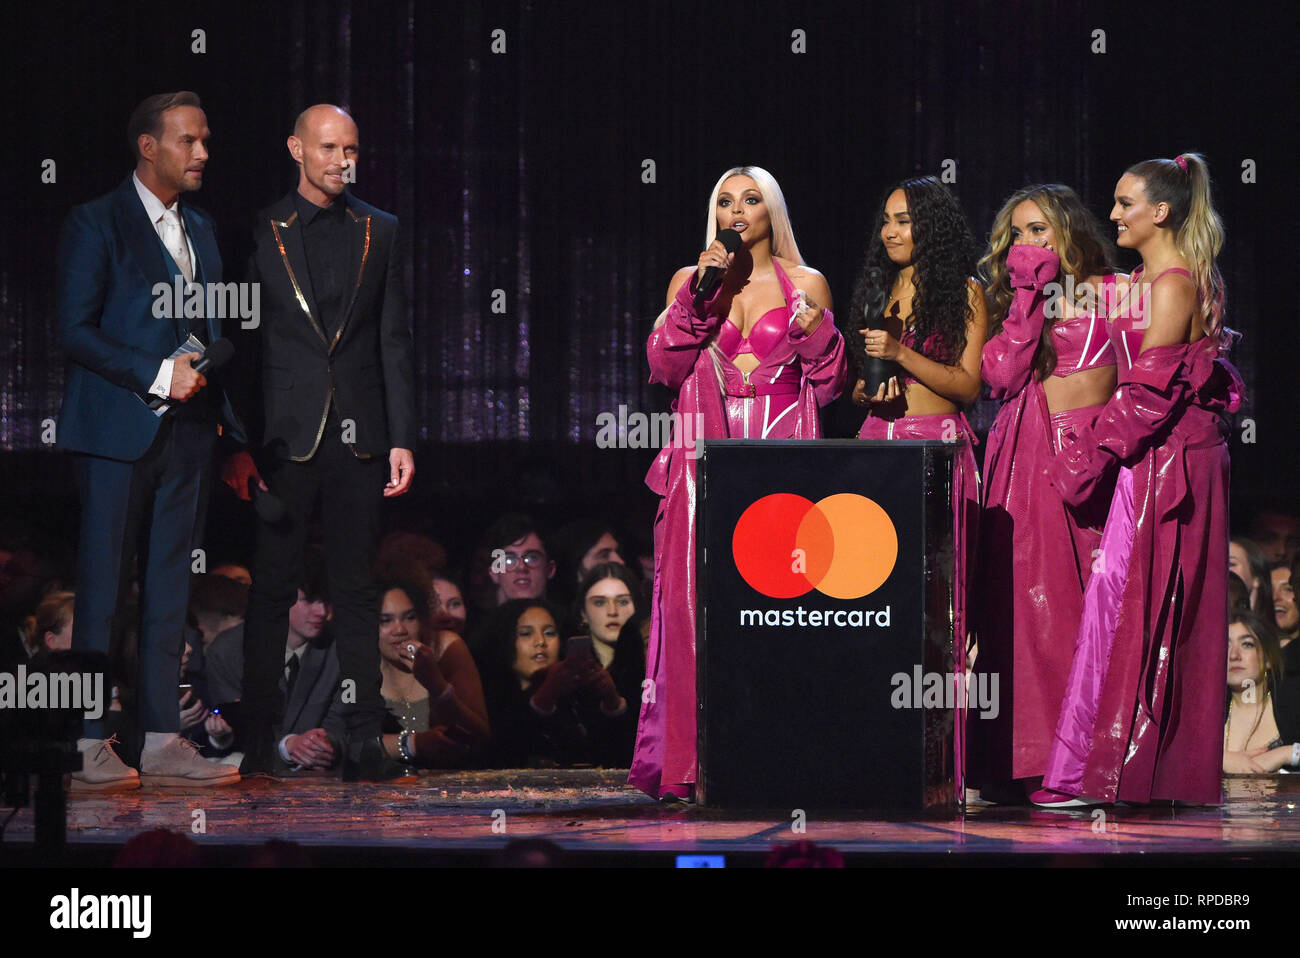 Photo Must Be Credited ©Alpha Press 079965 20/02/2019 Matt and Luke Goss Bros Jesy Nelson Leigh Anne Pinnock Jade Thirwall Perrie Edwards Little Mix The Brit Awards 2019 Live Show at The O2 Arena London - Stock Image